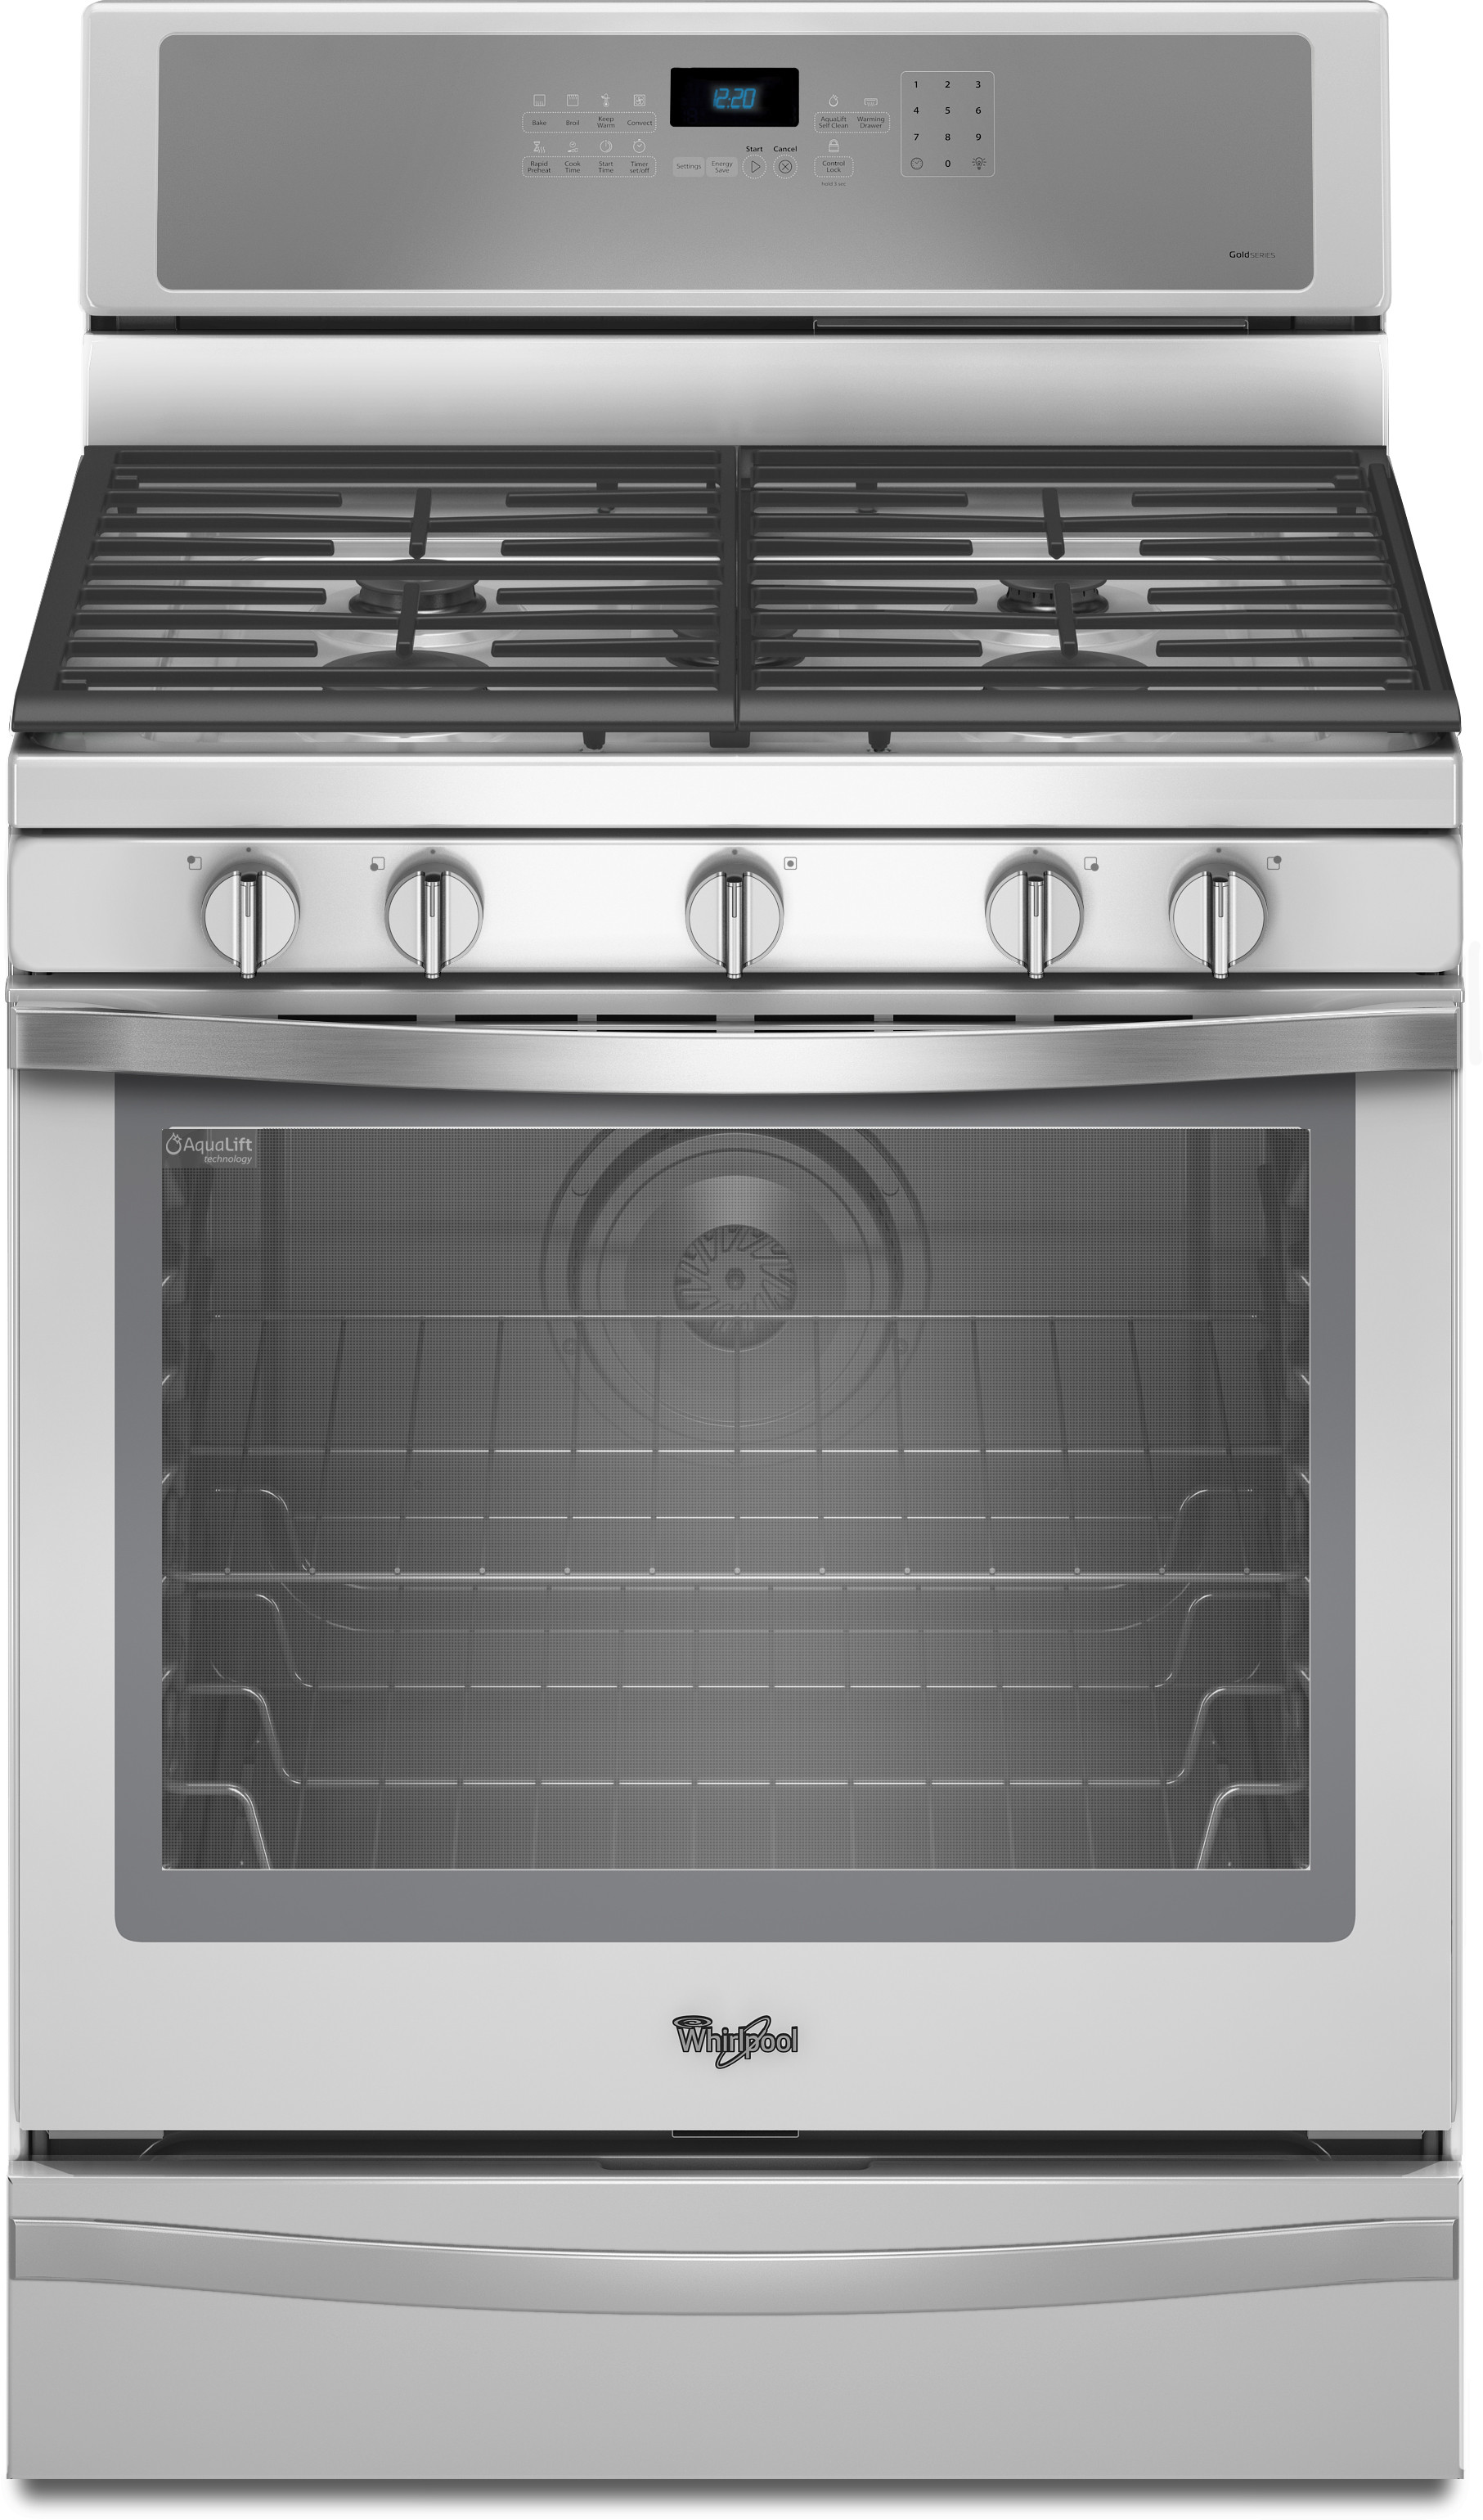 Whirlpool Wfg715h0eh 30 Inch Freestanding Gas Range With 5